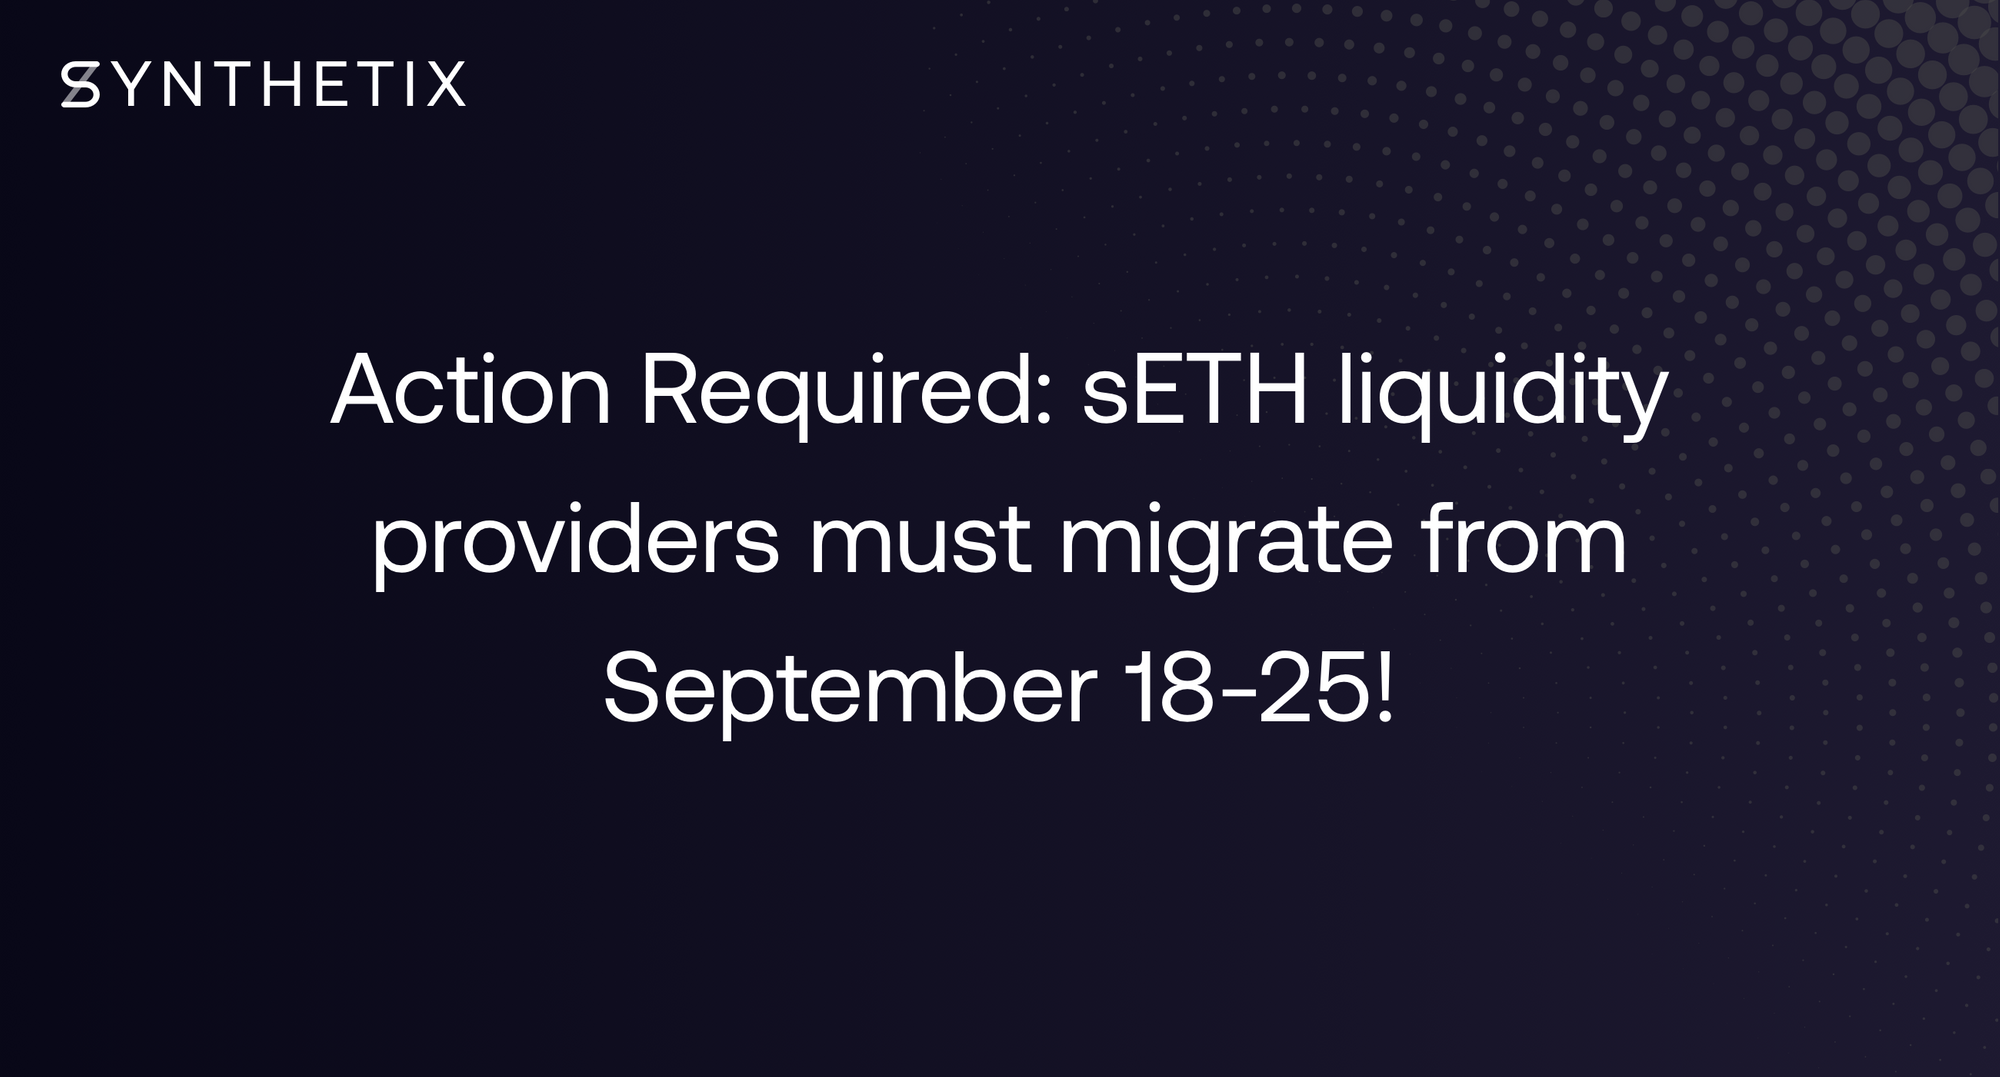 Action Required: sETH liquidity providers must migrate from September 18-25!